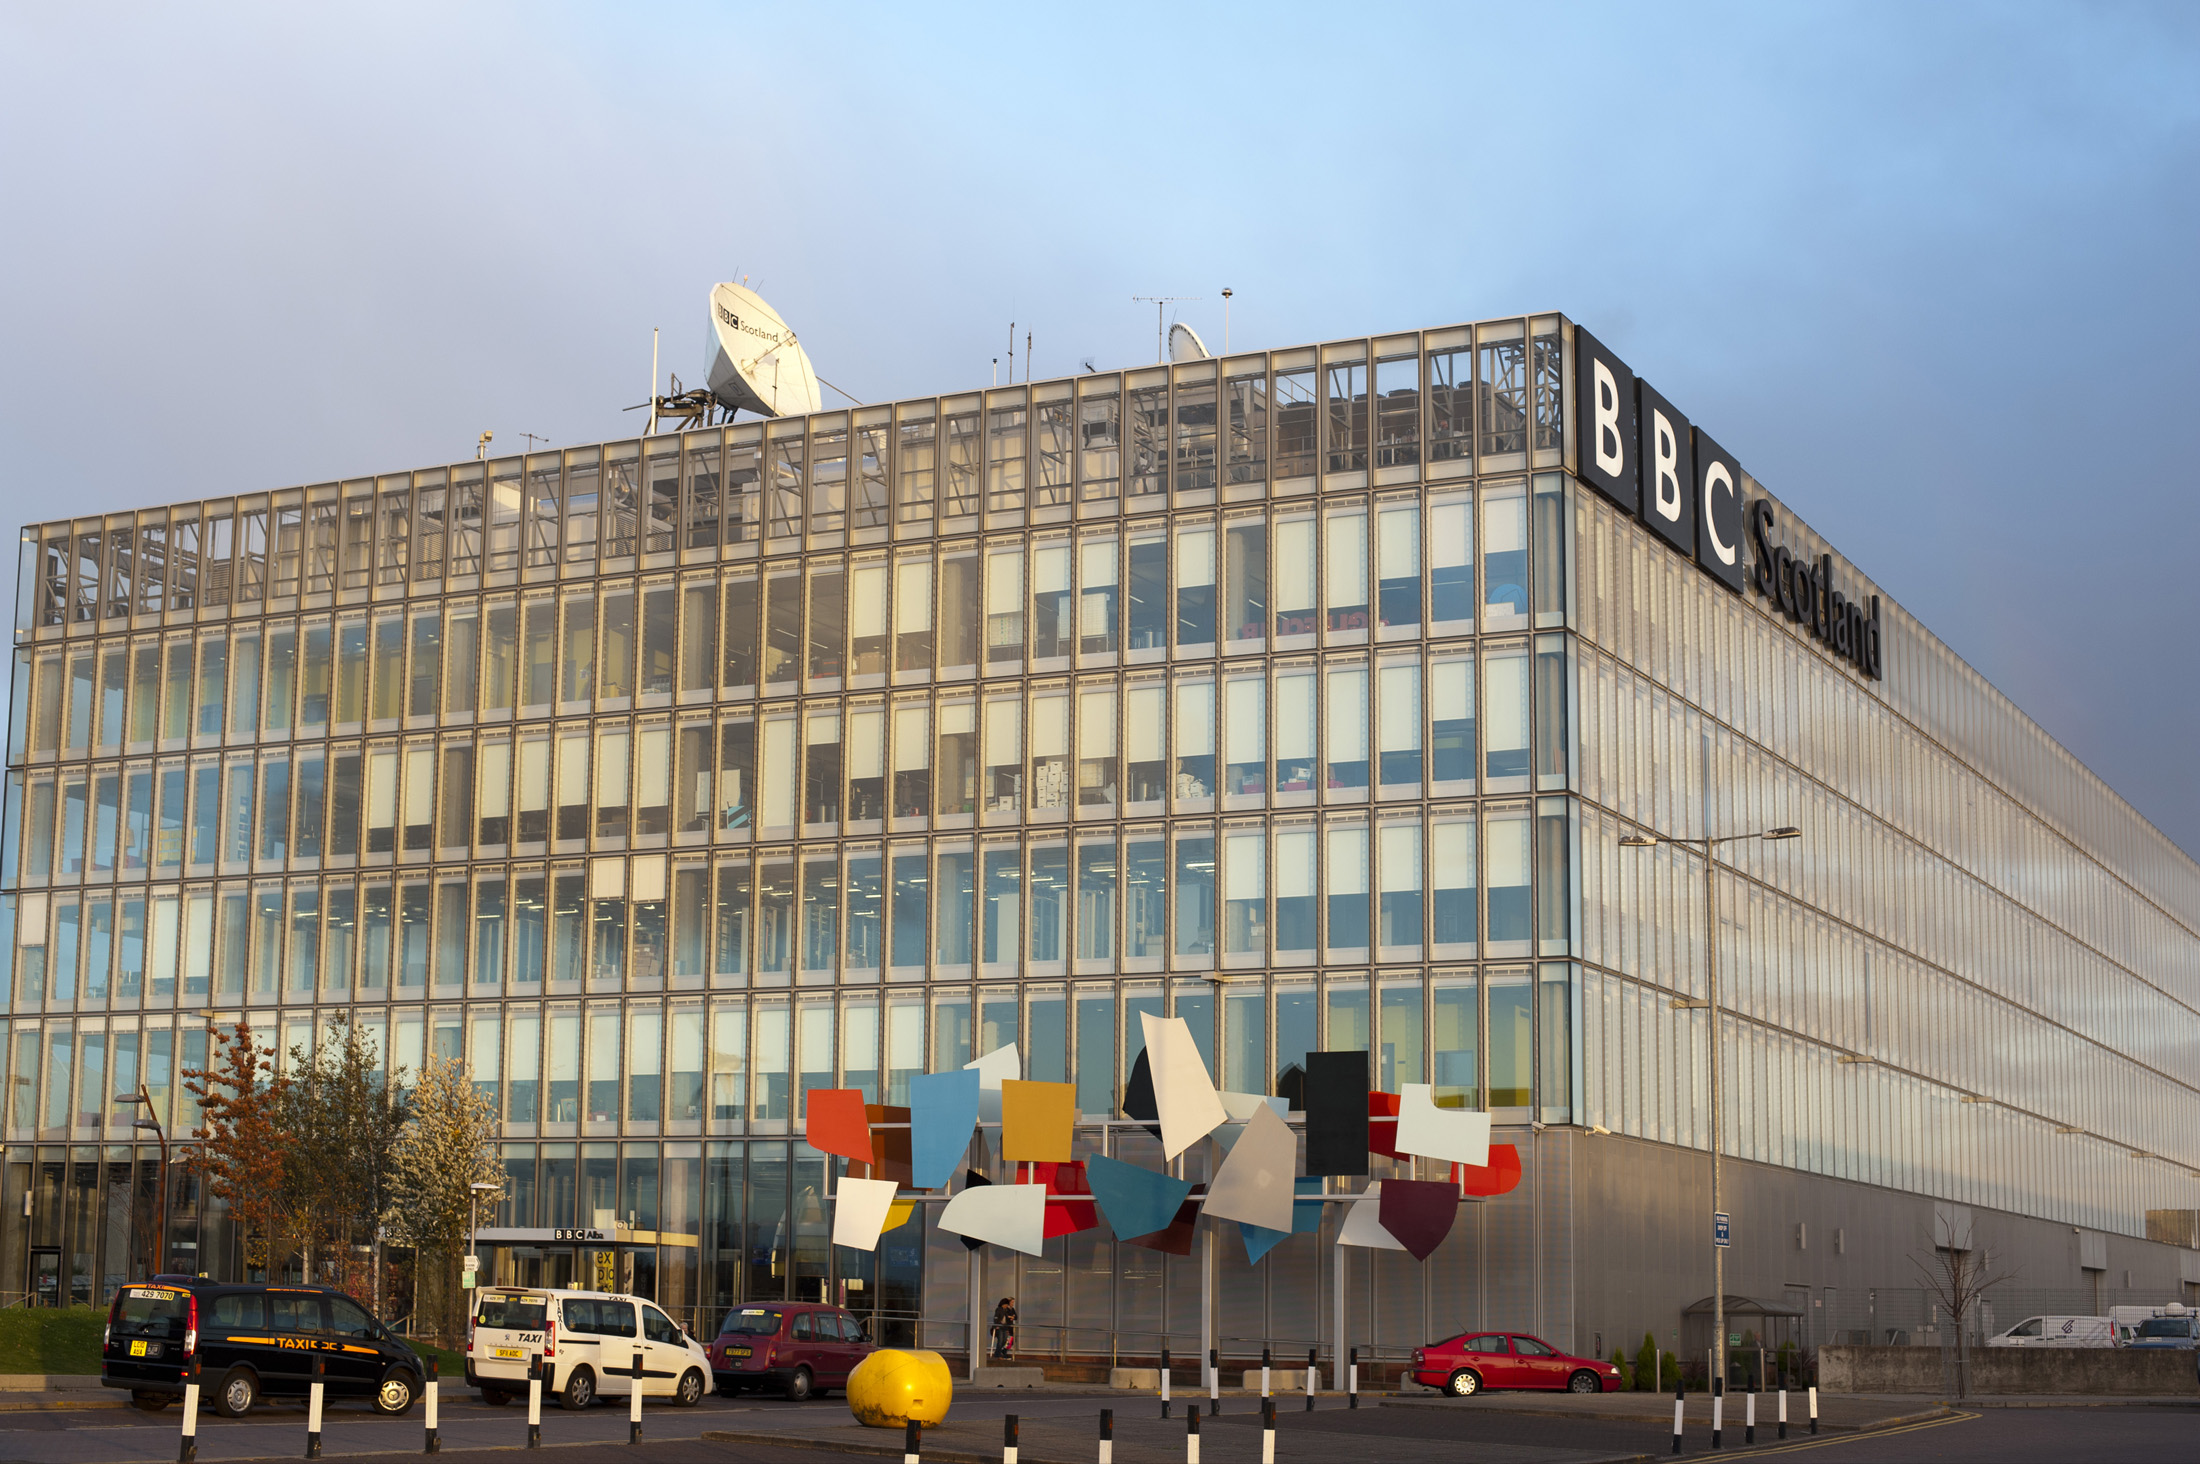 Exterior view of the BBC Scotland building, Pacific Quay, Glasgow with its array of brightly coloured architectural panels in the forecourt